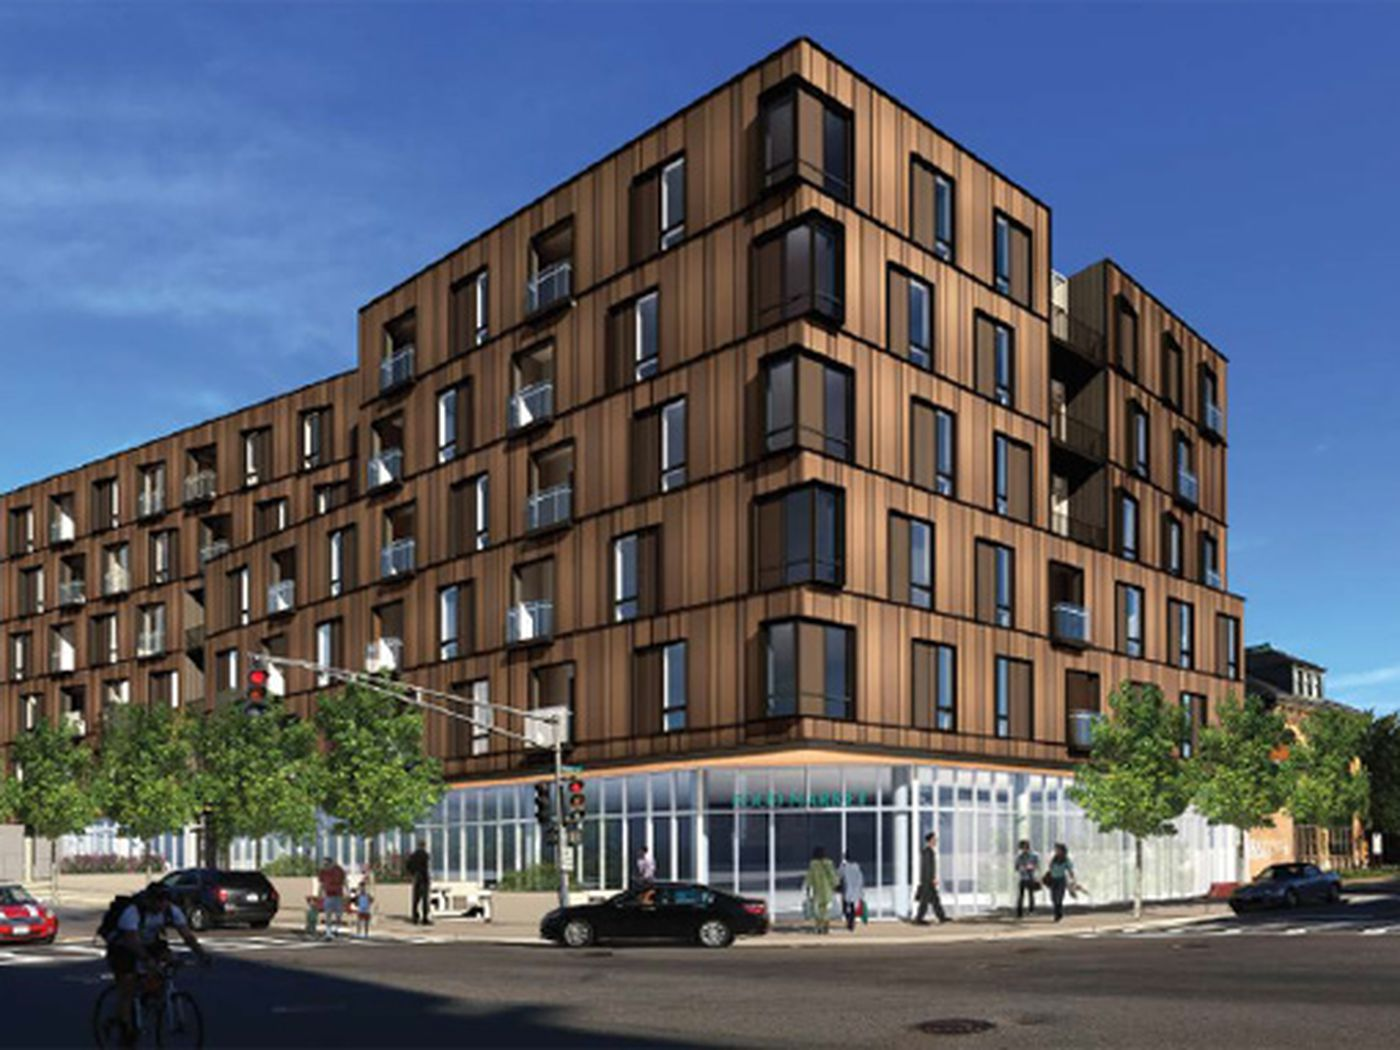 Allston Development Would Add Five Buildings At Harvard Avenue And Cambridge Street